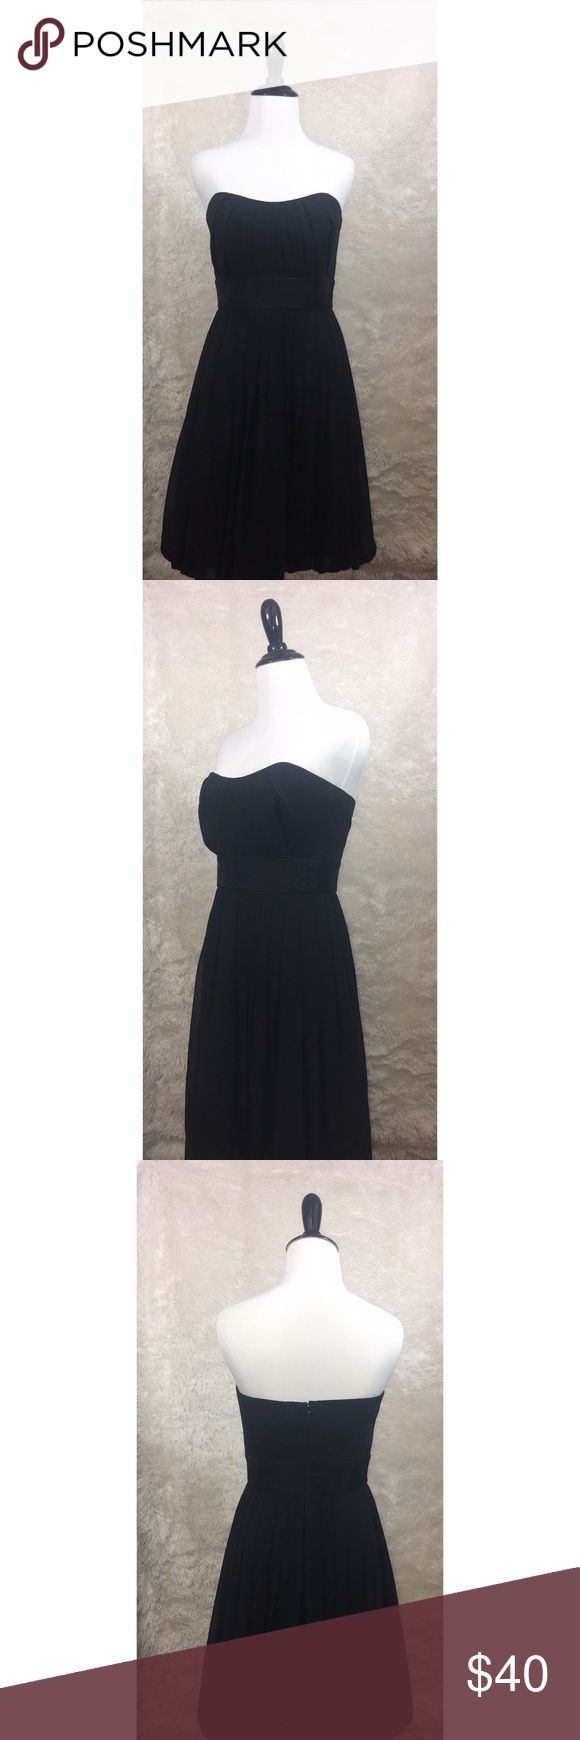 """White House Black Market Strapless Black Dress White House Black Market - Strapless Black Dress - Size 2  Approx Measurements while laying flat:  Armpit to Armpit - 15"""" Waist - 13"""" Length - 28"""" Materials - shell 100% polyester - trim 70% rayon 19% polyester 11% nylon - lining 100% polyester  Flaws - Convertible dress that is supposed to go from strapless to strapped dress, but Is missing one strap (pictured). Can easily be fixed.   Excellent used condition! No stretch. Wired bodice for…"""